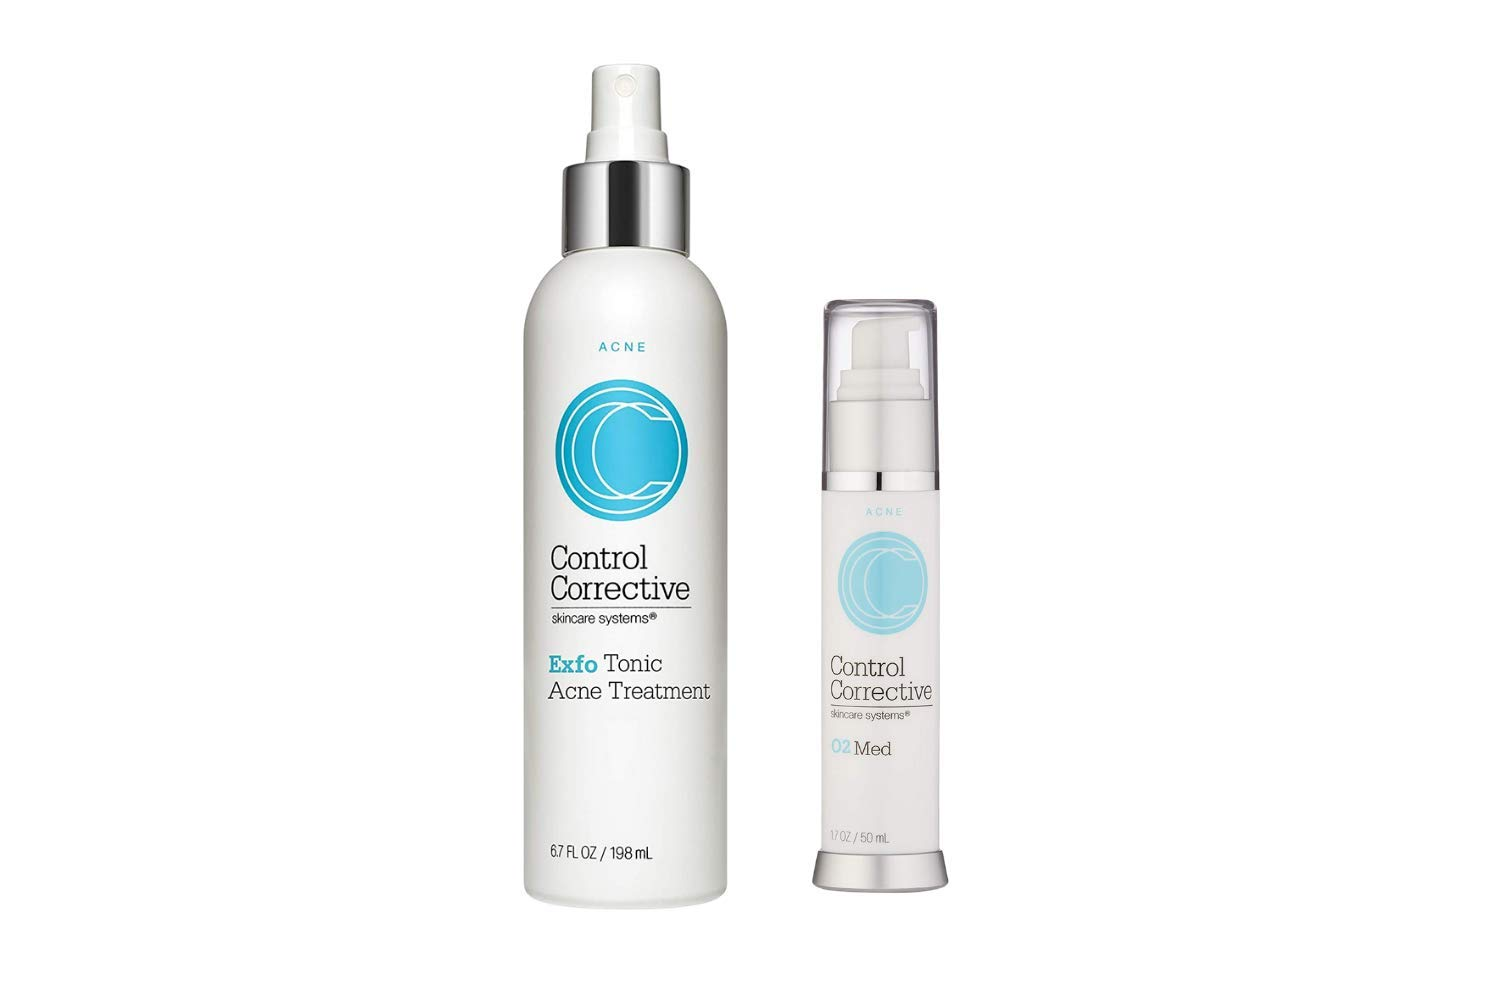 CONTROL CORRECTIVE Exfo Tonic and O2 Med Acne Cream, Reduces Breakouts, Kills Bacteria, Softens Blemishes